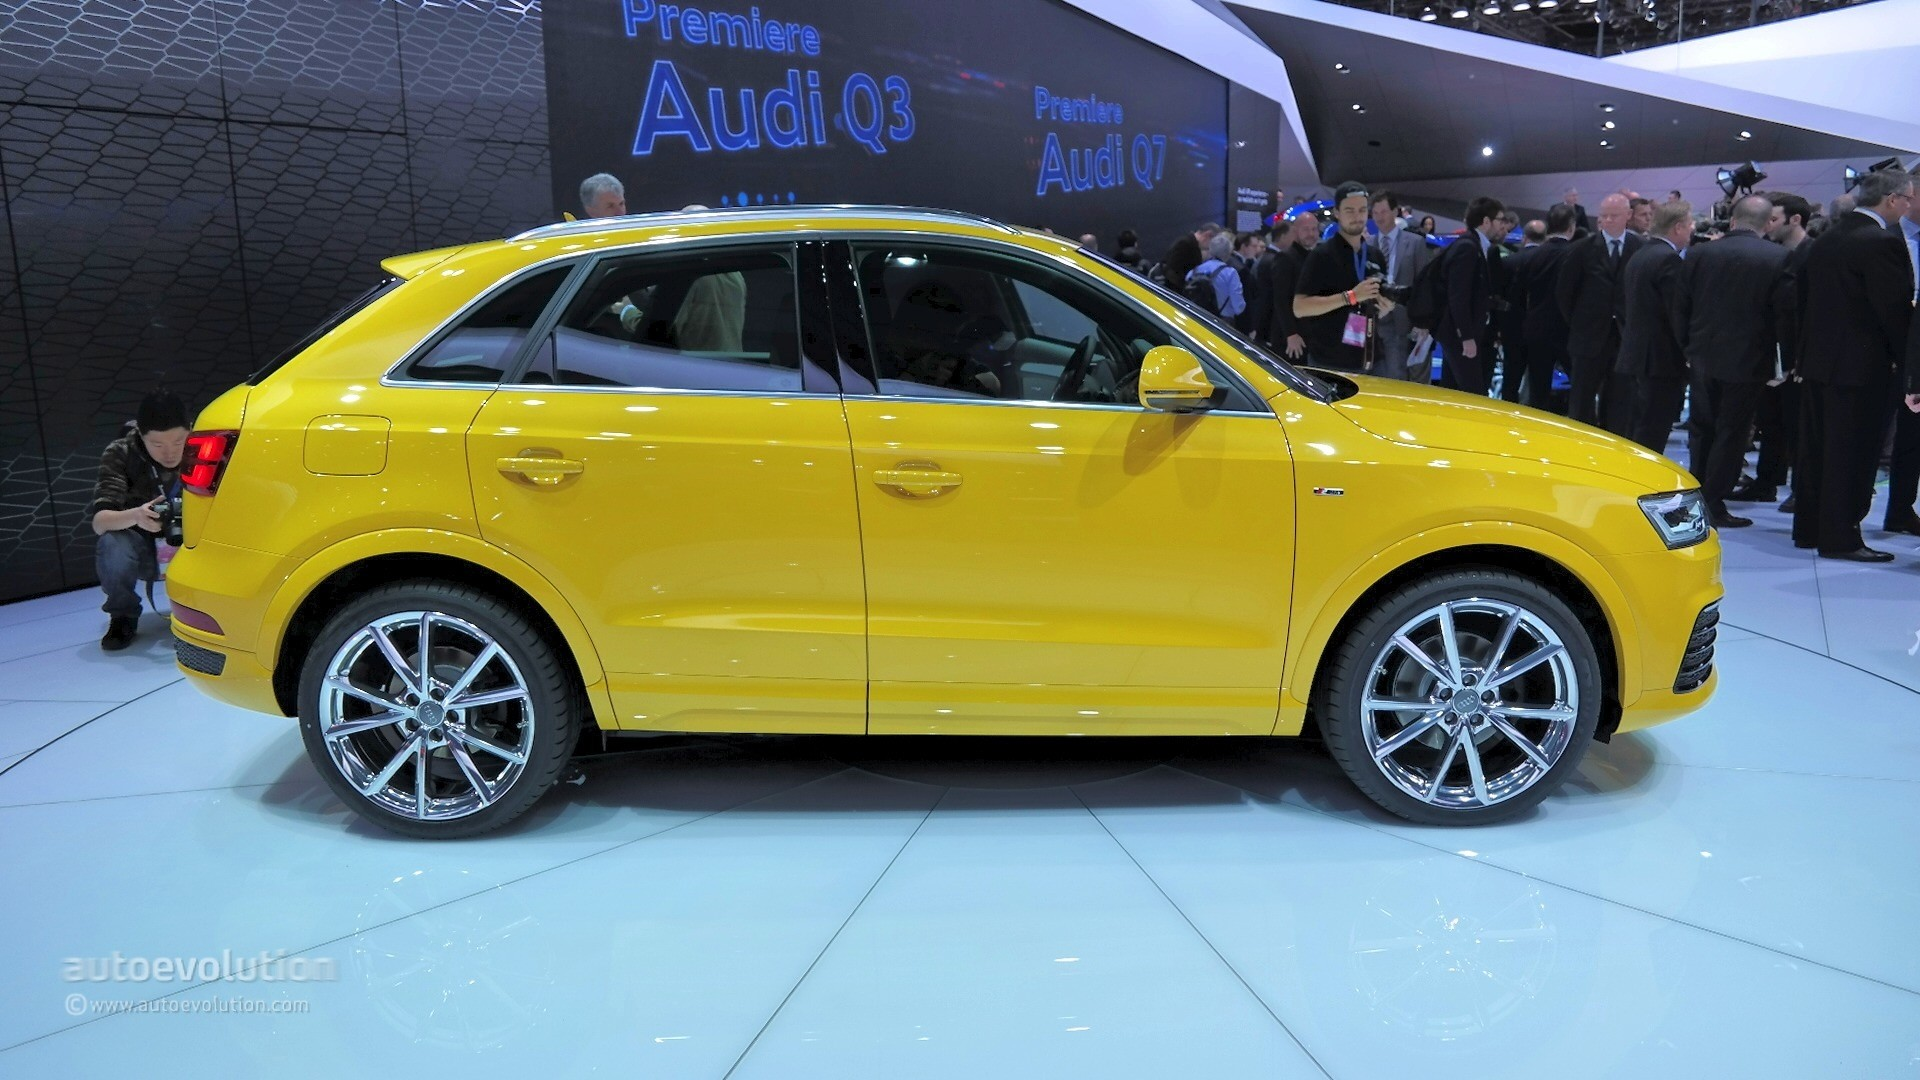 2016 Audi Q3 Debuts New Design and 210 HP Engine in Detroit [Live ...